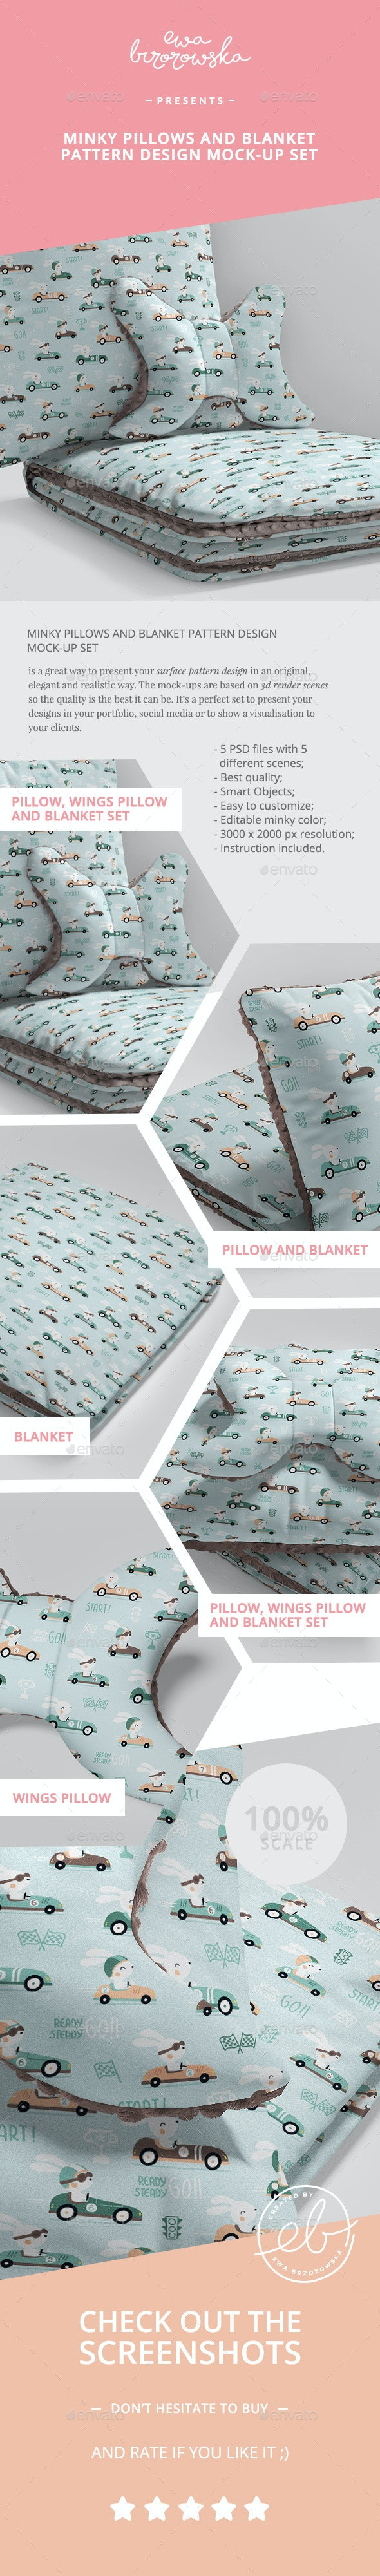 Minky Pillows and Blanket Pattern Design Mock-up Set - Miscellaneous Apparel